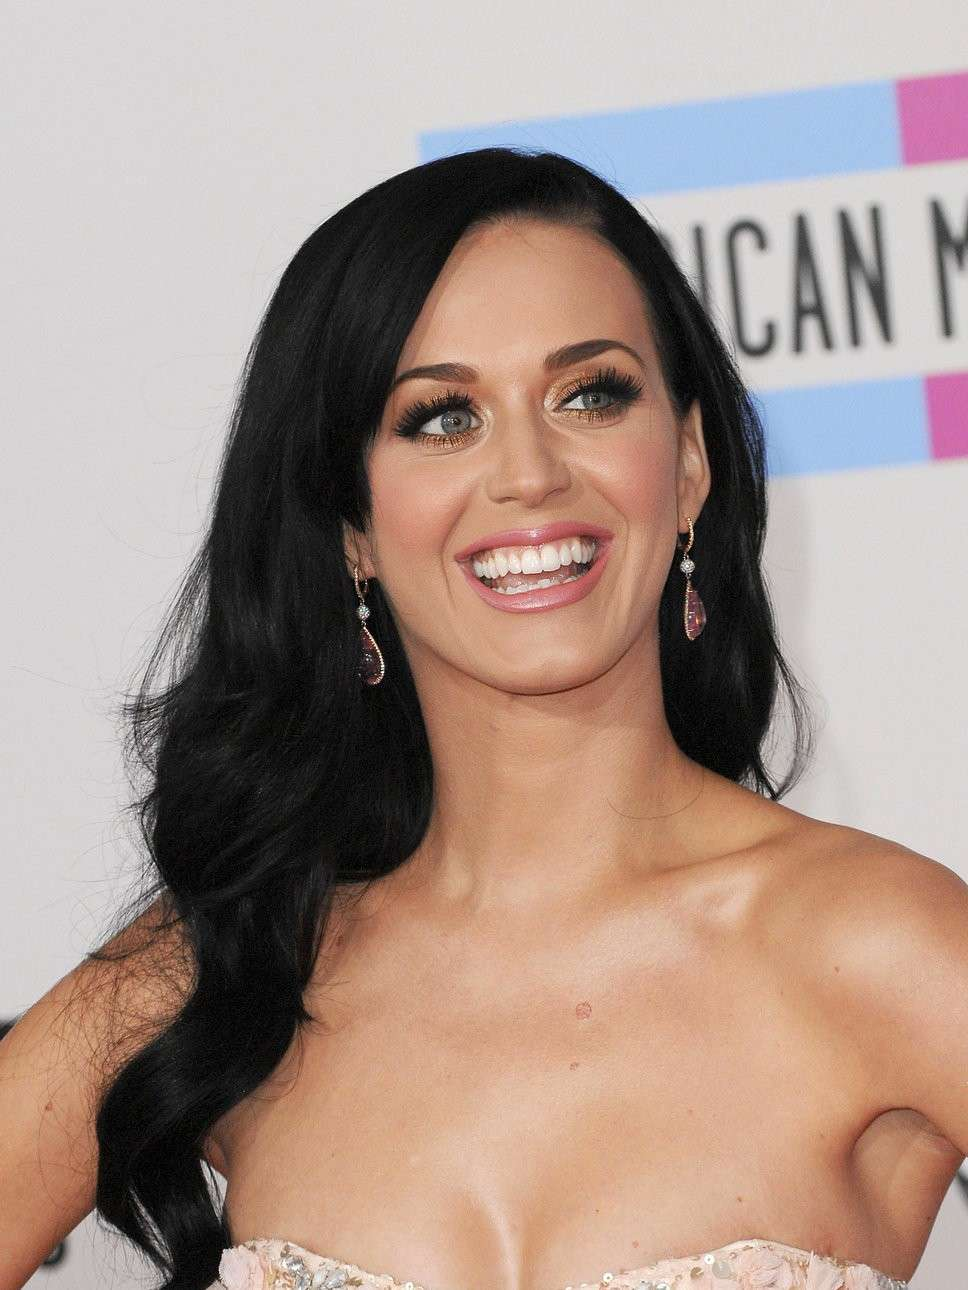 Katy Perry sorridente